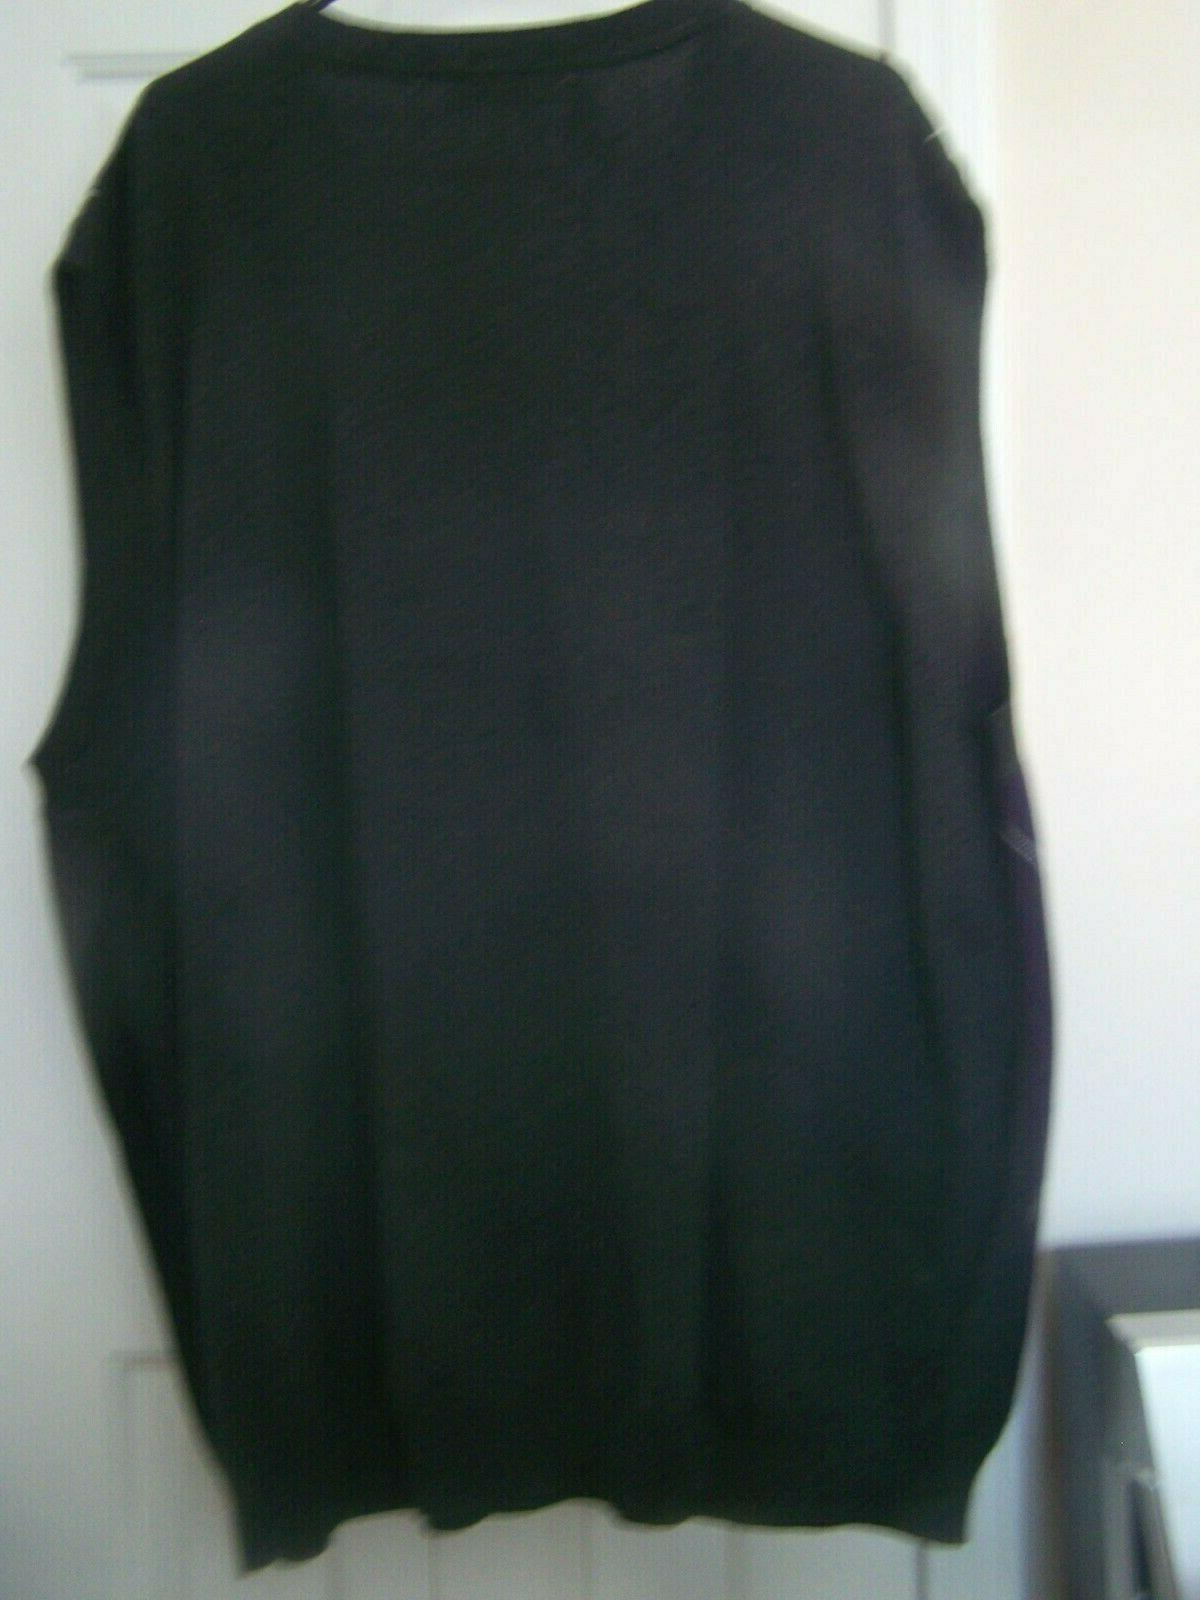 MEN'S V-NECK SWEATER VEST -NWT